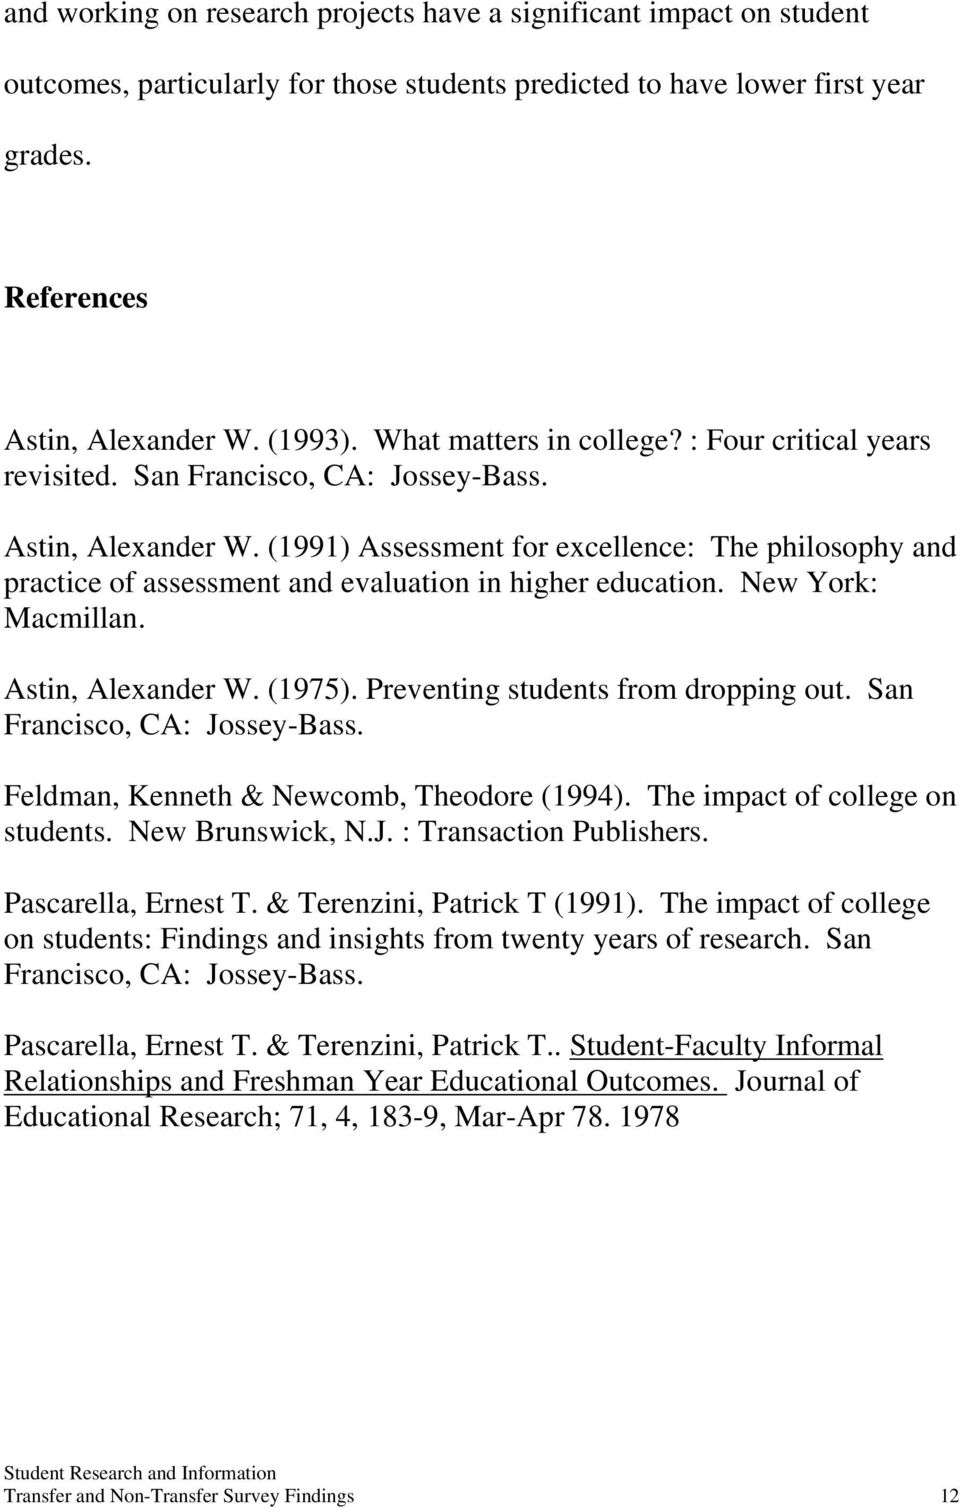 (1991) Assessment for excellence: The philosophy and practice of assessment and evaluation in higher education. New York: Macmillan. Astin, Alexander W. (1975). Preventing students from dropping out.